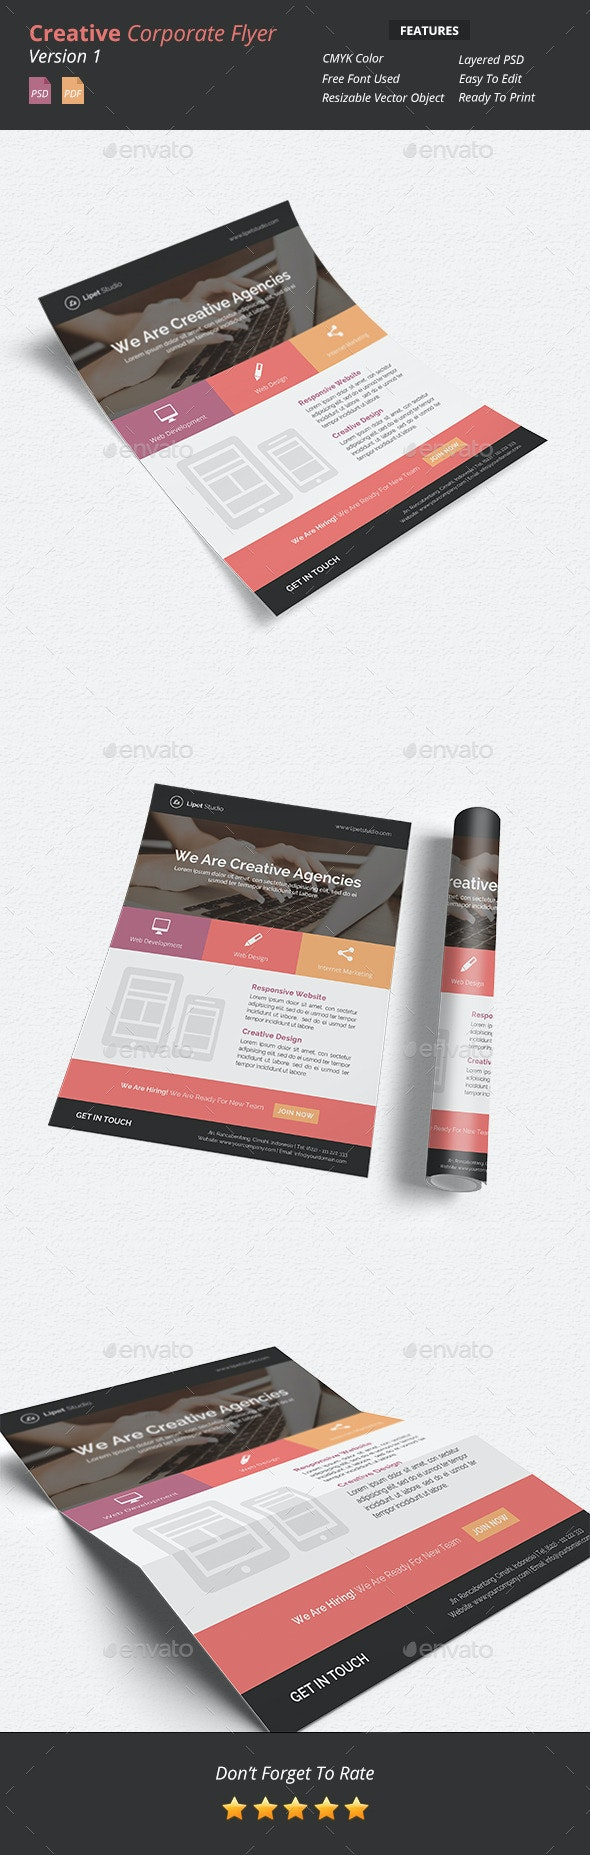 Creative Corporate Flyer v1 - Corporate Flyers